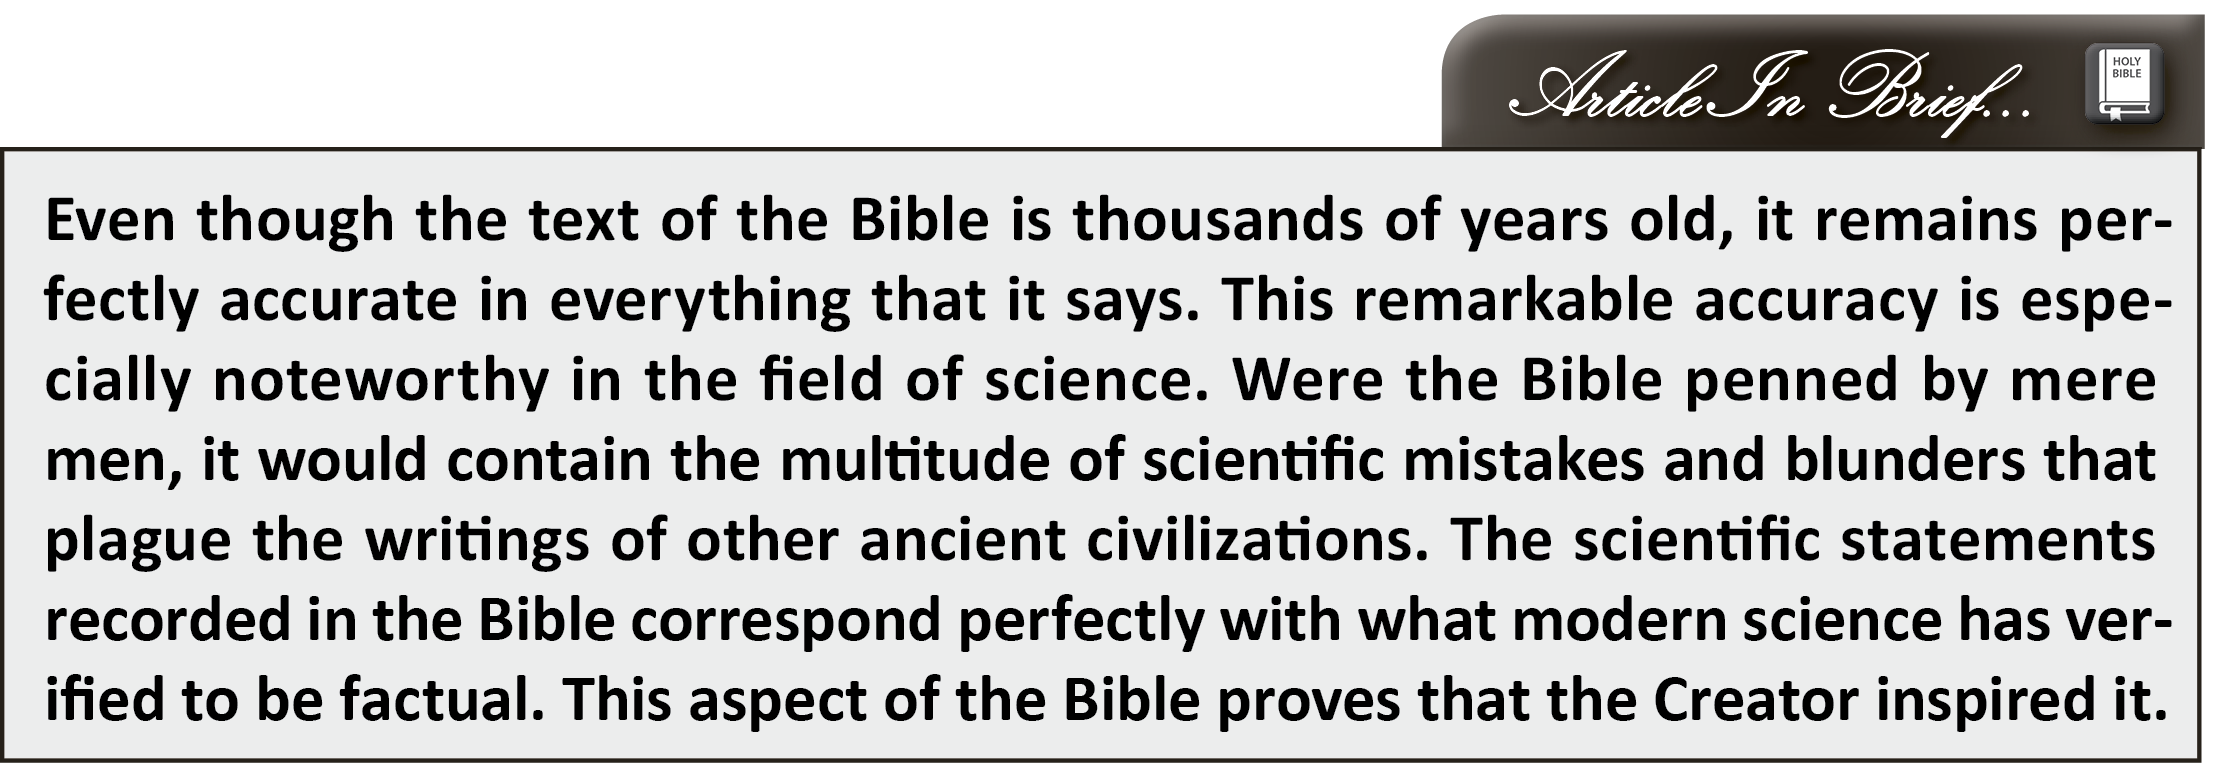 The Bible and Science - asa3.org